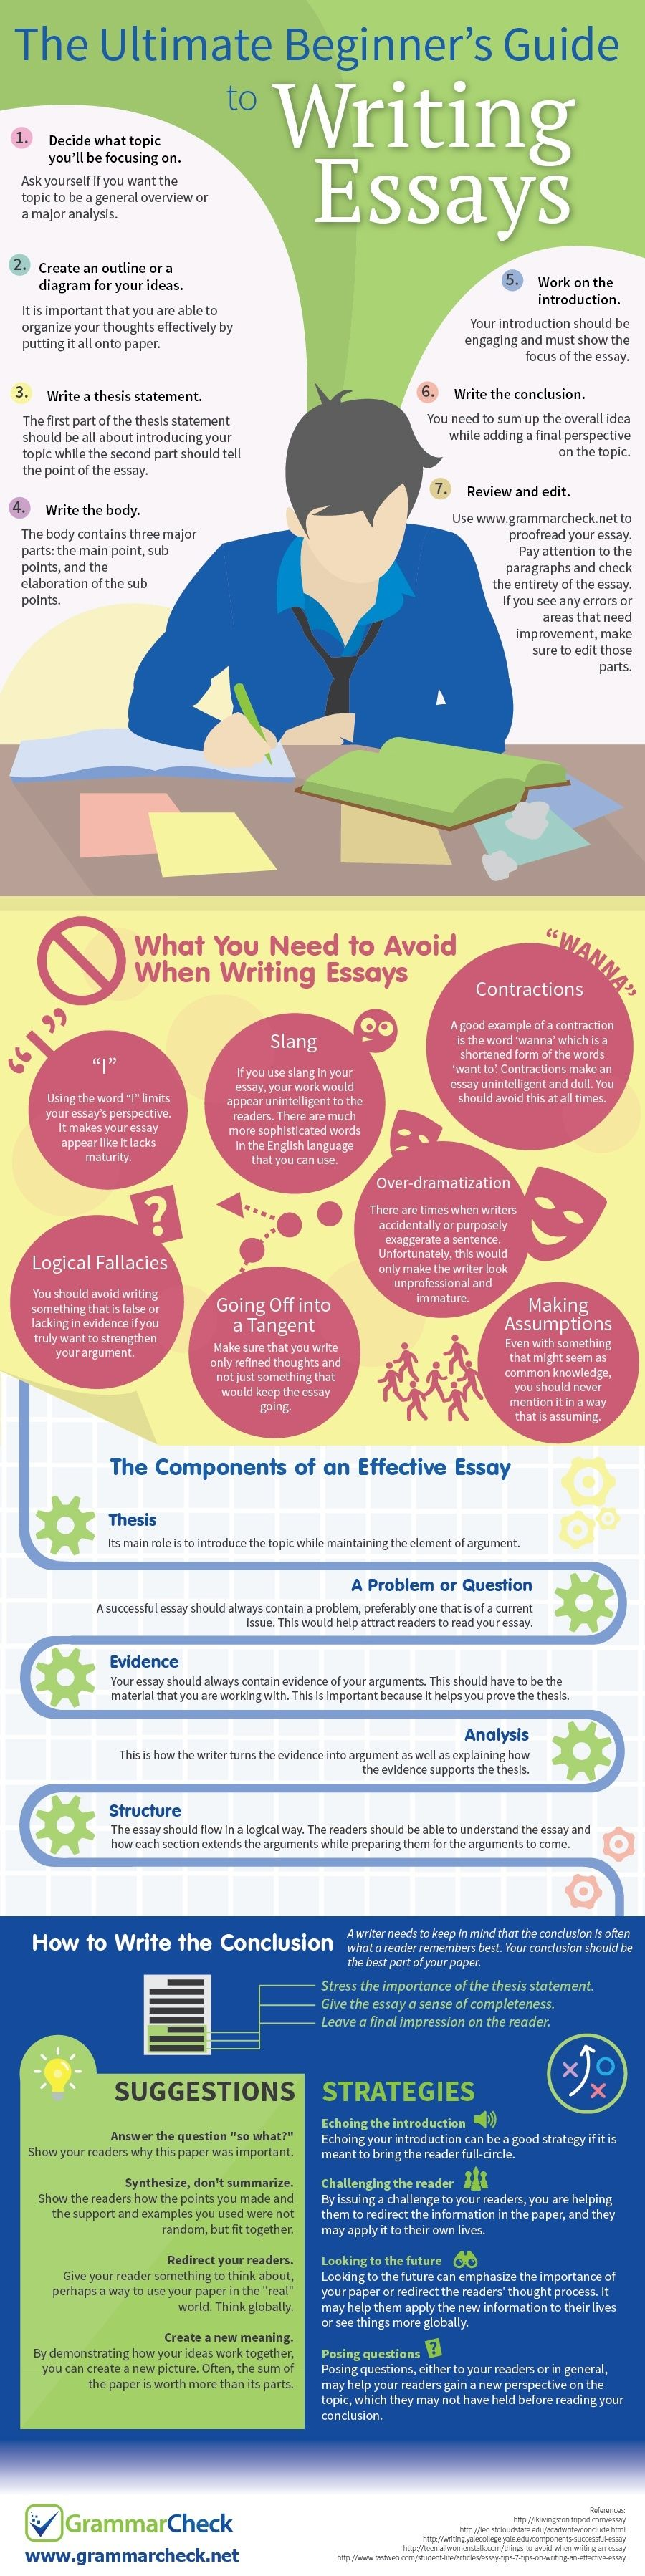 Business plan writing service in nc